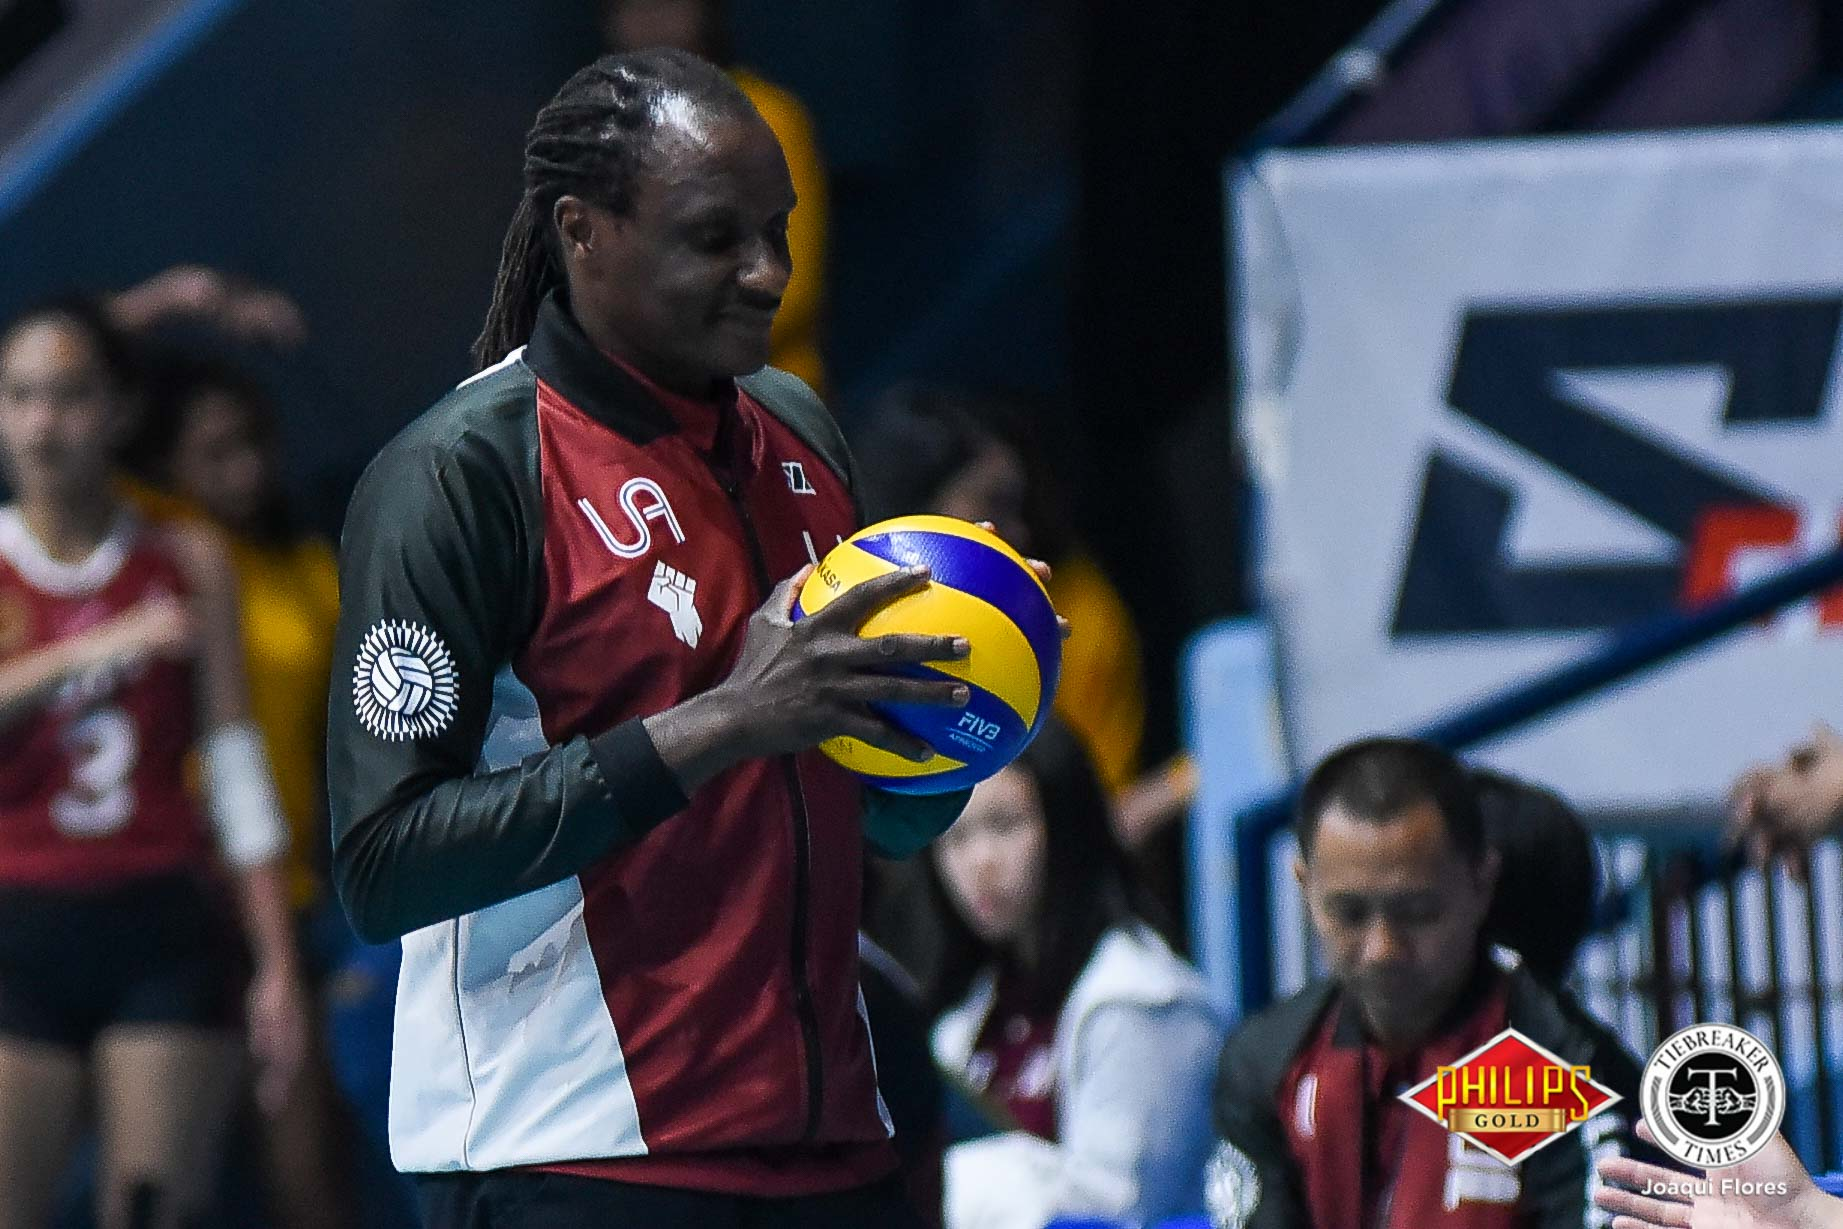 Tiebreaker Times Comeback from 7-13 down? It was part of the plan, says Godfrey Okumu News PVL UP Volleyball  UP Women's Volleyball Godfrey Okumu Ayel Estranero 2018 PVL Women's Collegiate Conference 2018 PVL Season